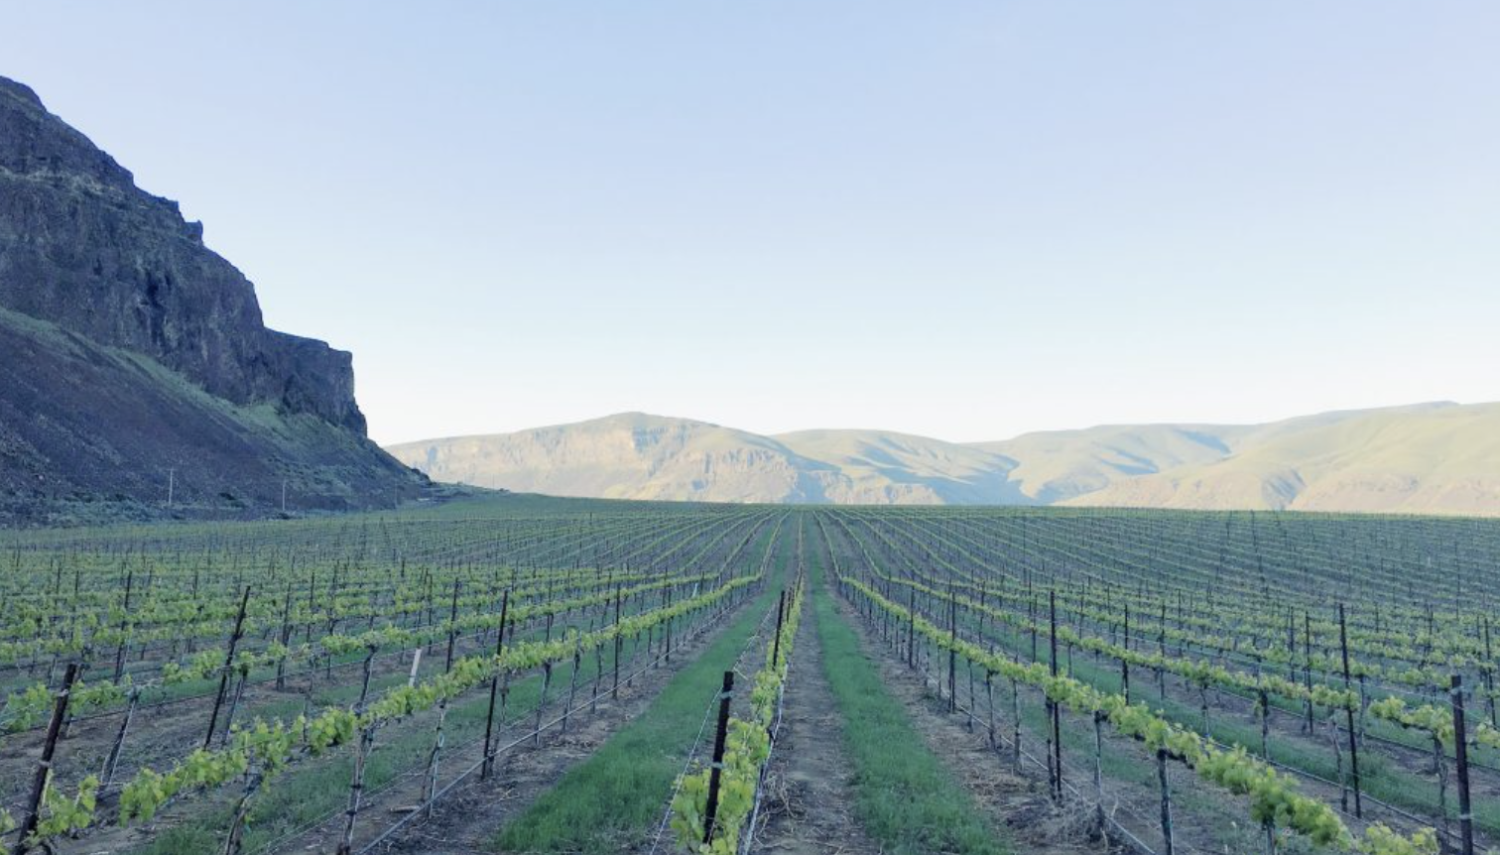 Immature green vines grow in neat rows with dark posts, with a soft-edged mountain in the distance and a steep cliff on the left. The sky above is dull blue.